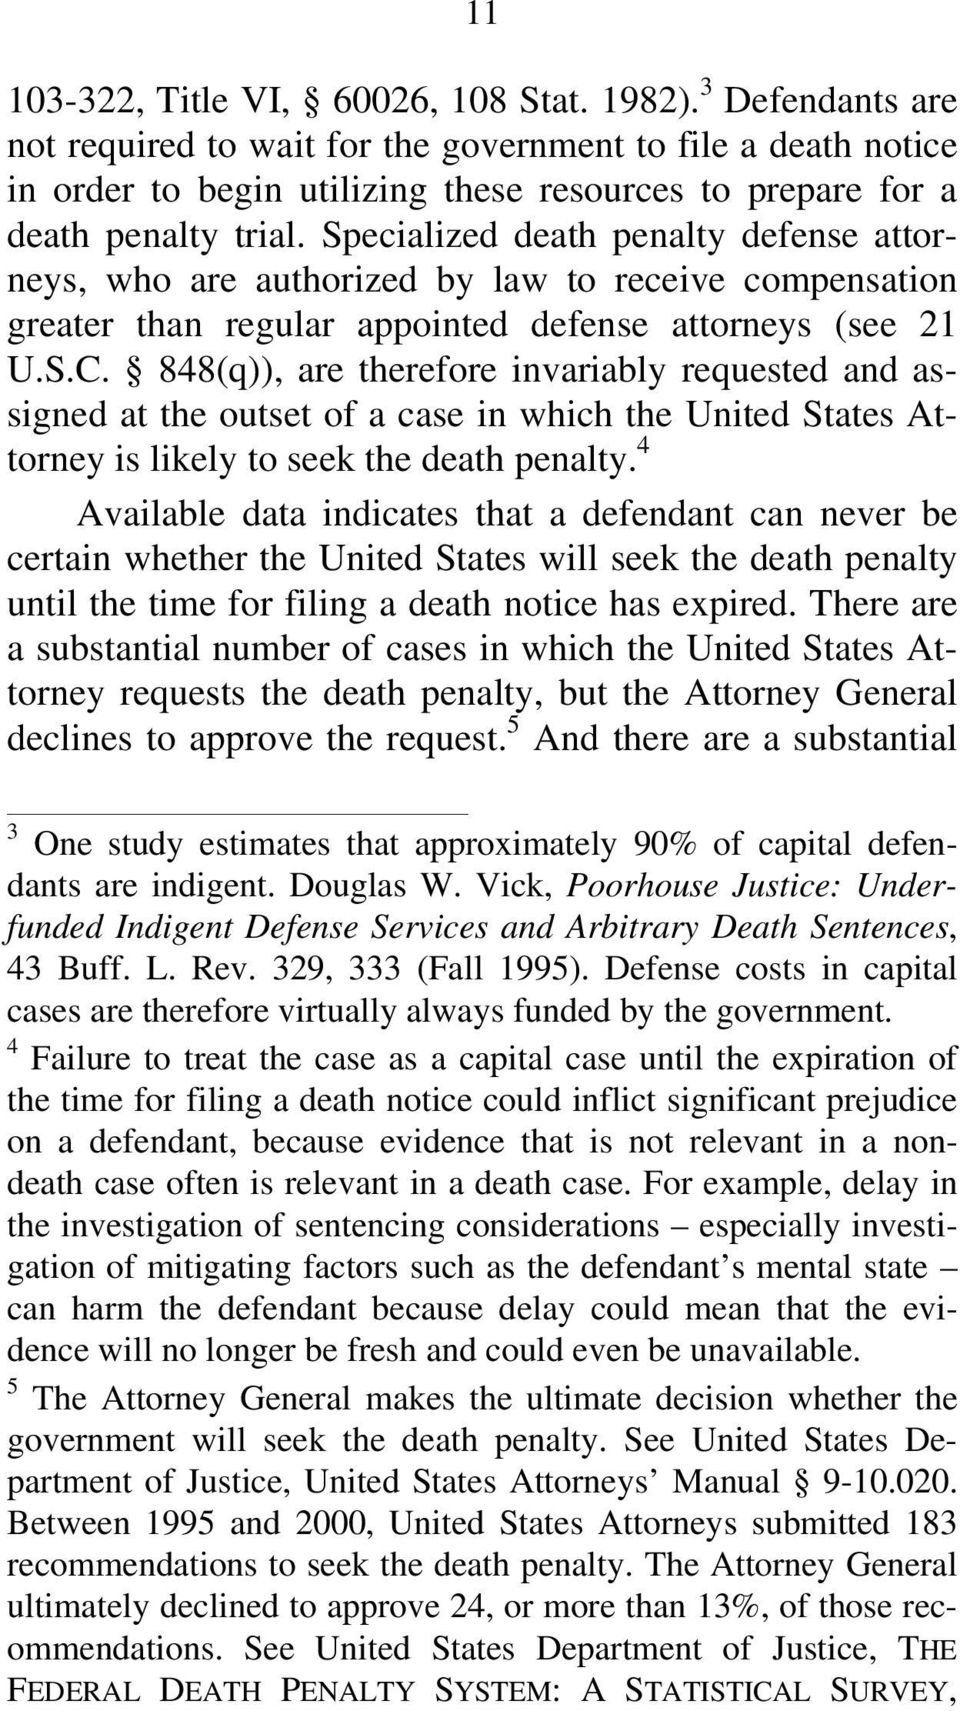 Specialized death penalty defense attorneys, who are authorized by law to receive compensation greater than regular appointed defense attorneys (see 21 U.S.C.